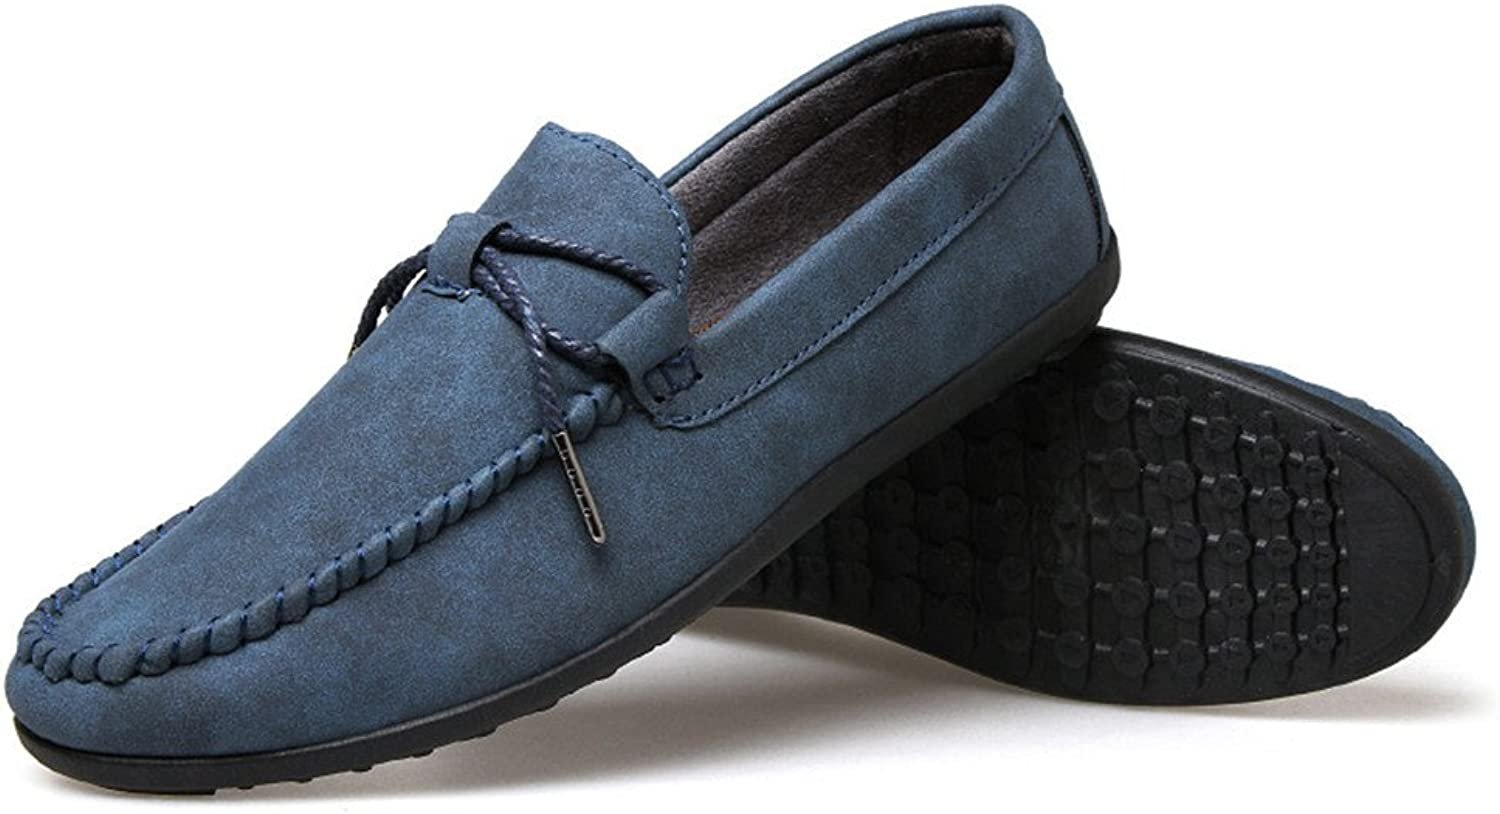 Men's casual leather shoes, fashionable casual shoes, pedal pedal shoes, casual shoes, casual shoes,Deep bluee,Forty-two